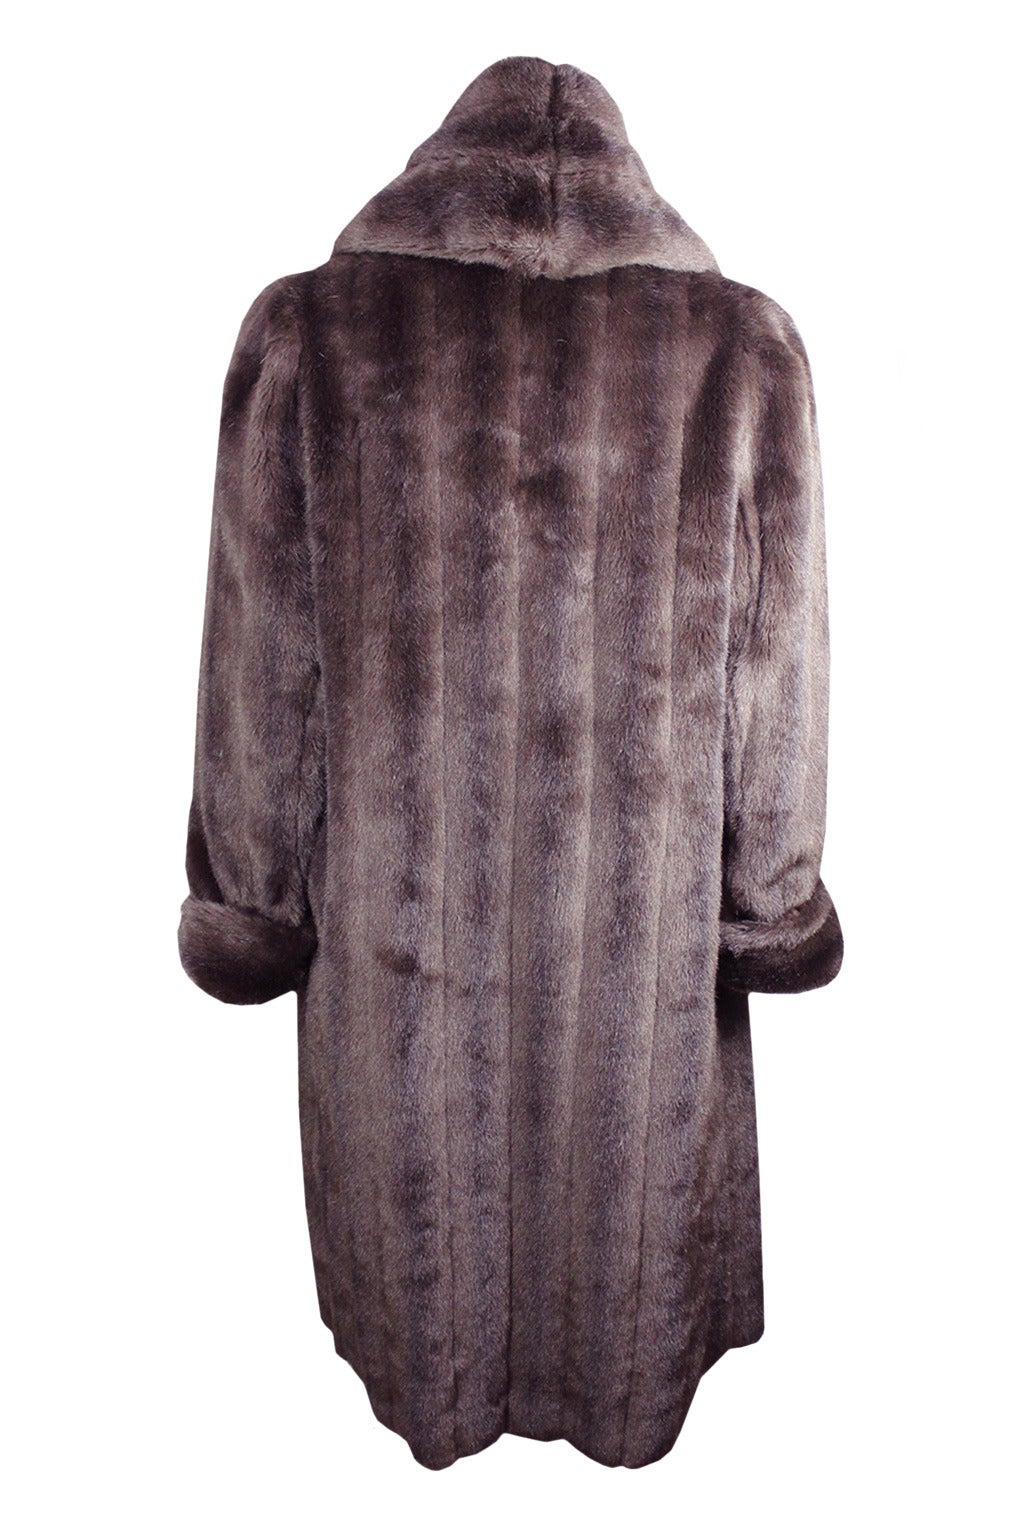 jean paul gaultier men 39 s faux fur robe coat at 1stdibs. Black Bedroom Furniture Sets. Home Design Ideas